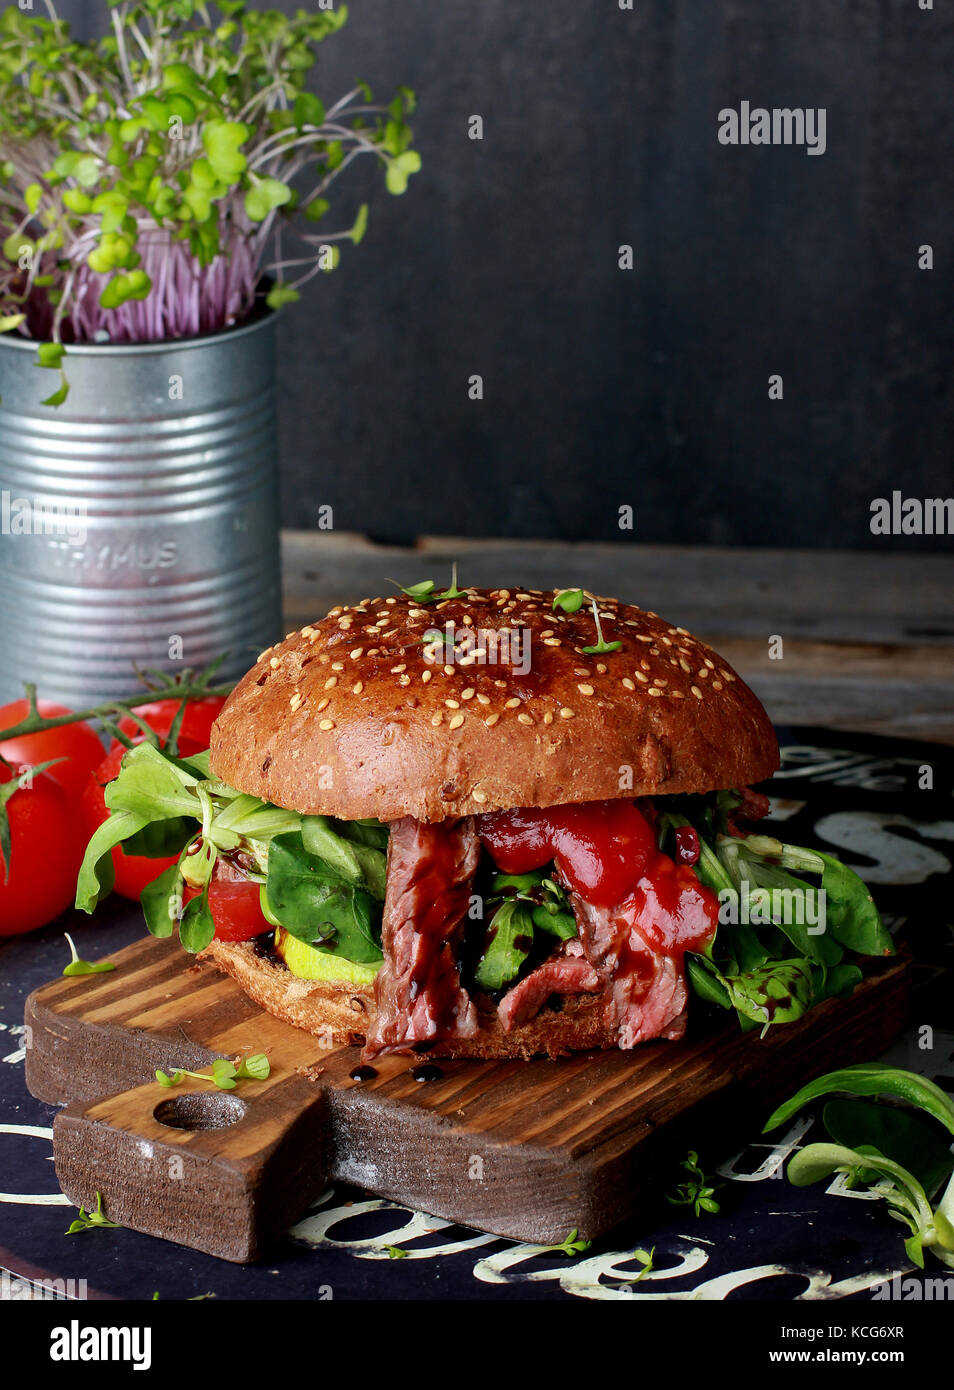 Fresh meat Burger with greens on wooden Board - Stock Image